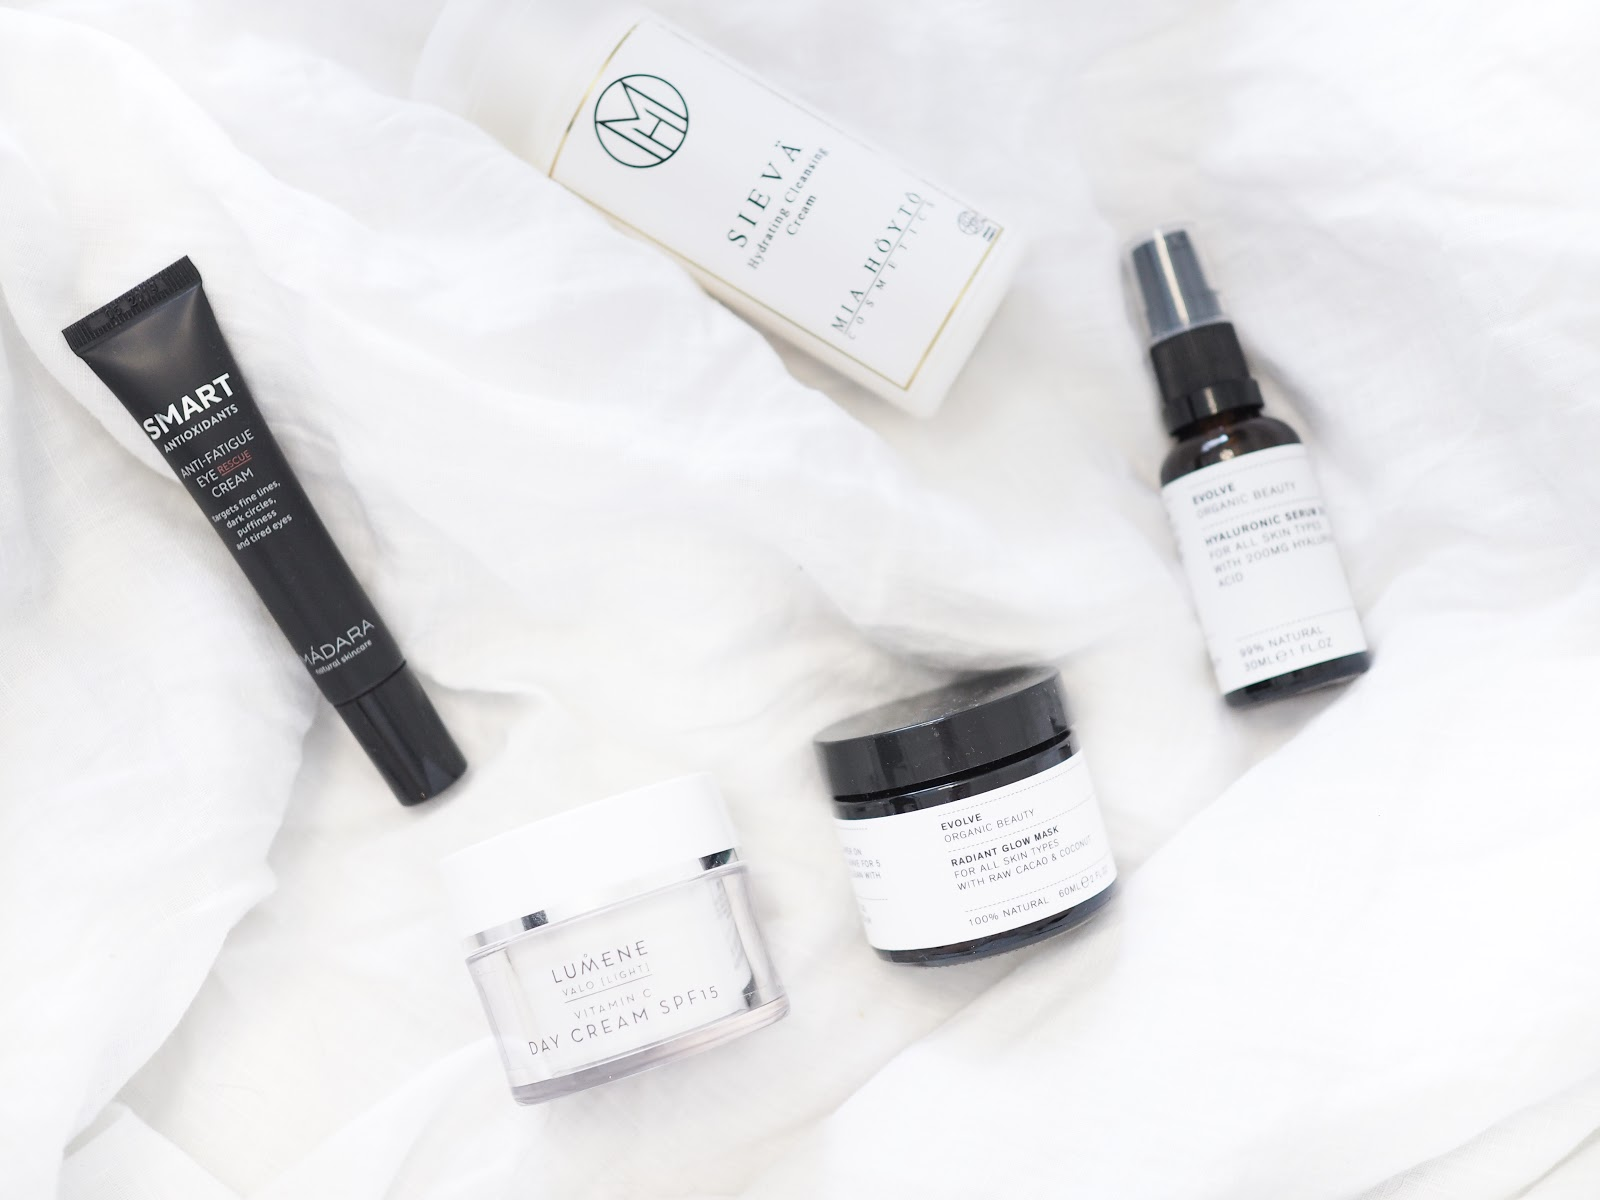 A few skin care favourites